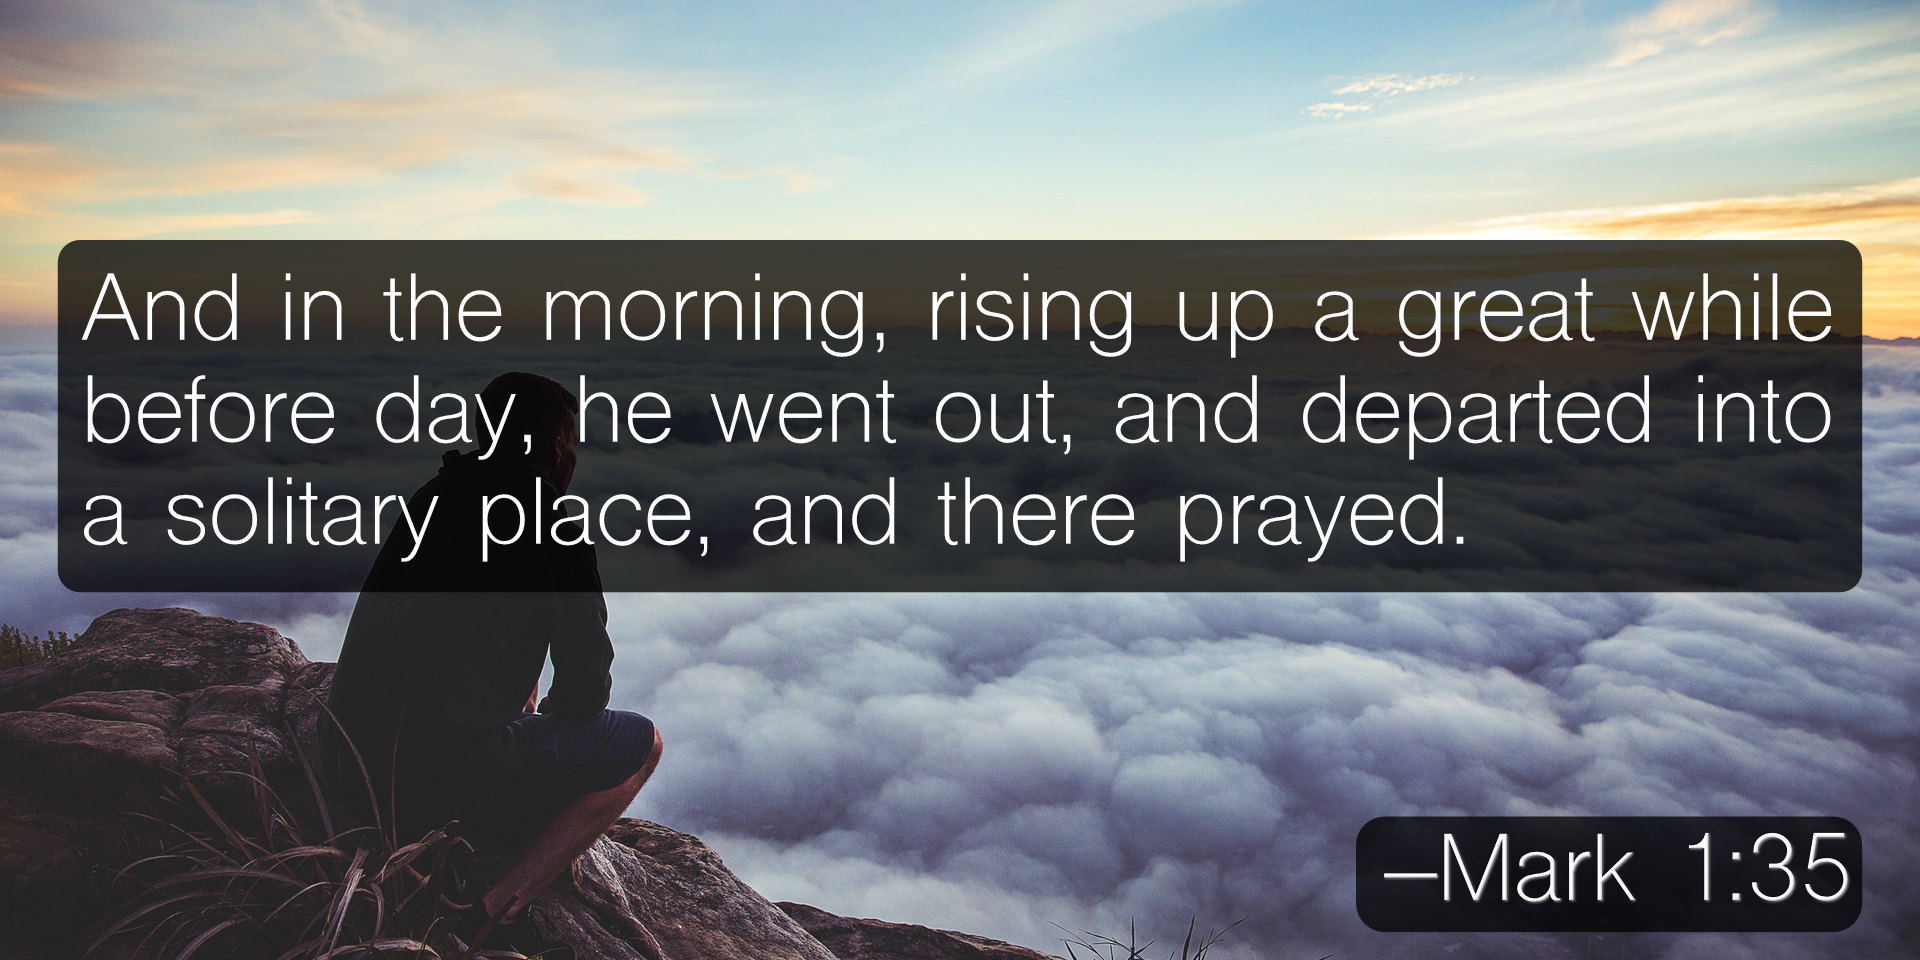 And in the morning, rising up a great while before day, he went out, and departed into a solitary place, and there prayed. –Mark 1:35